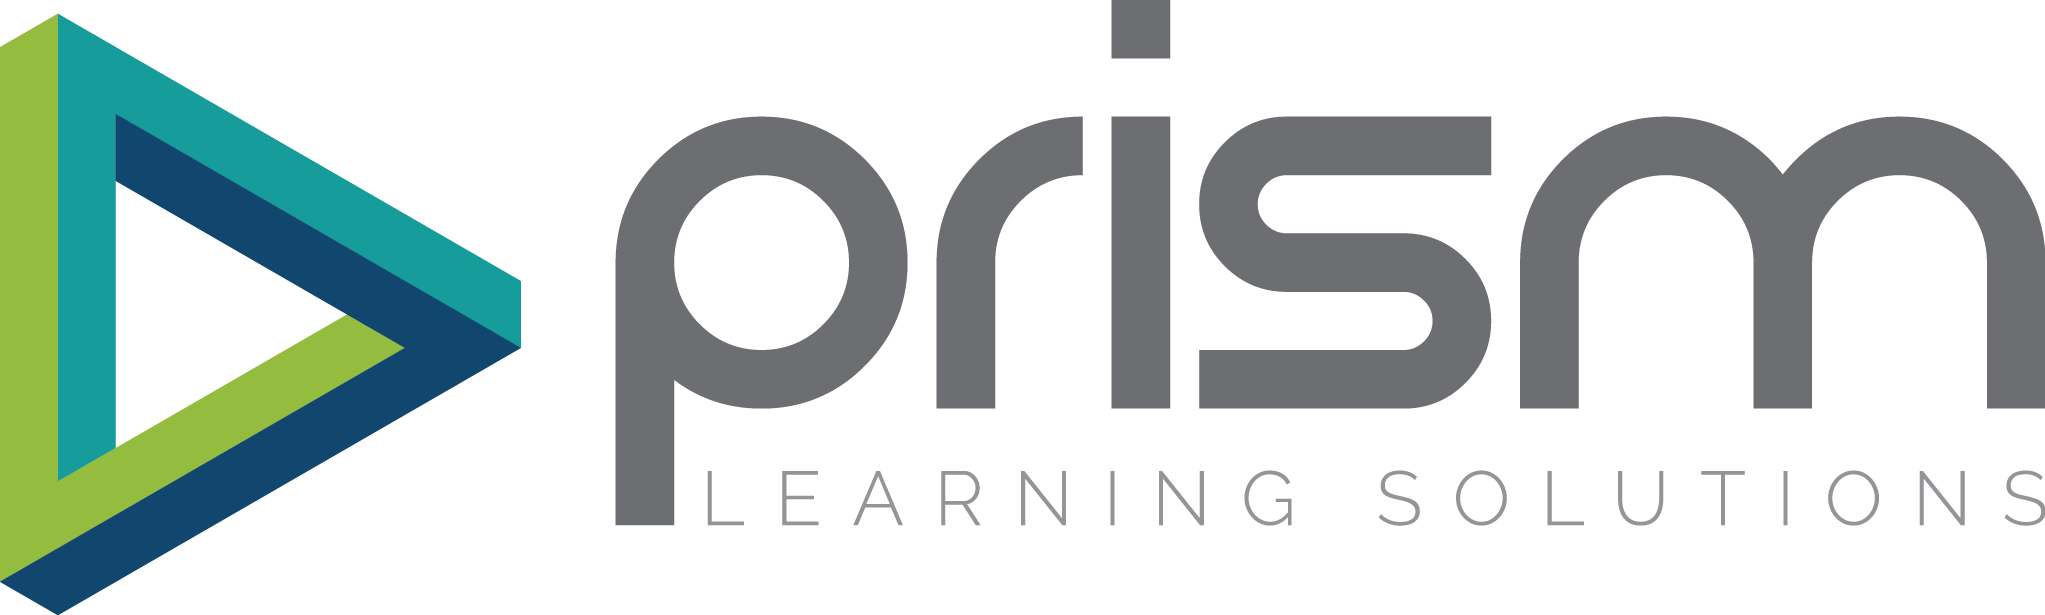 Prism Learning Solution's